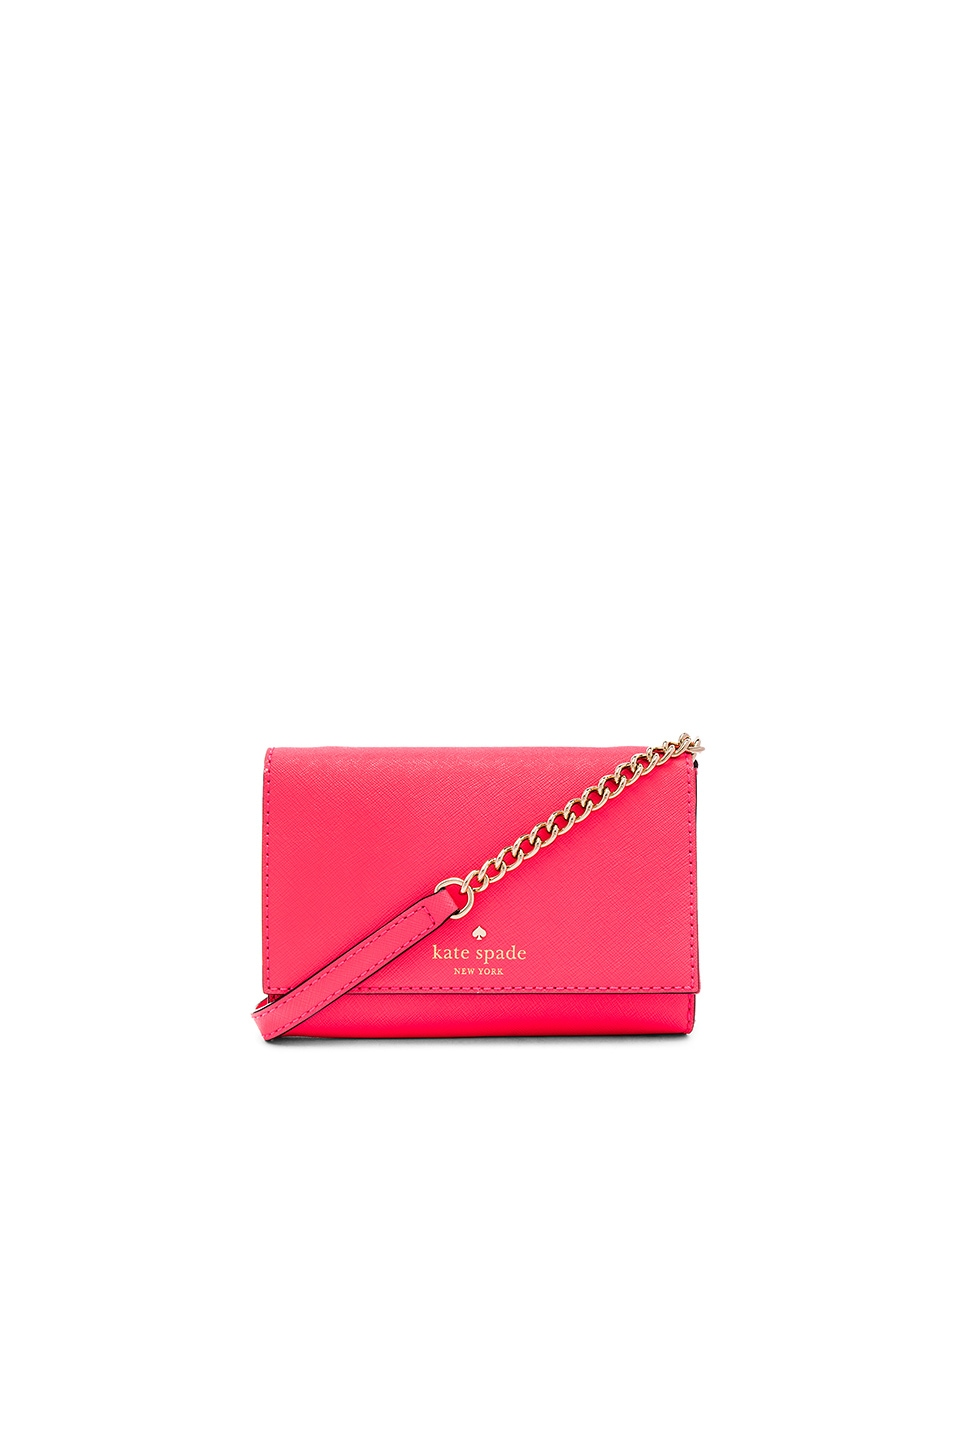 kate spade new york Cami Crossbody in Flo Geranium